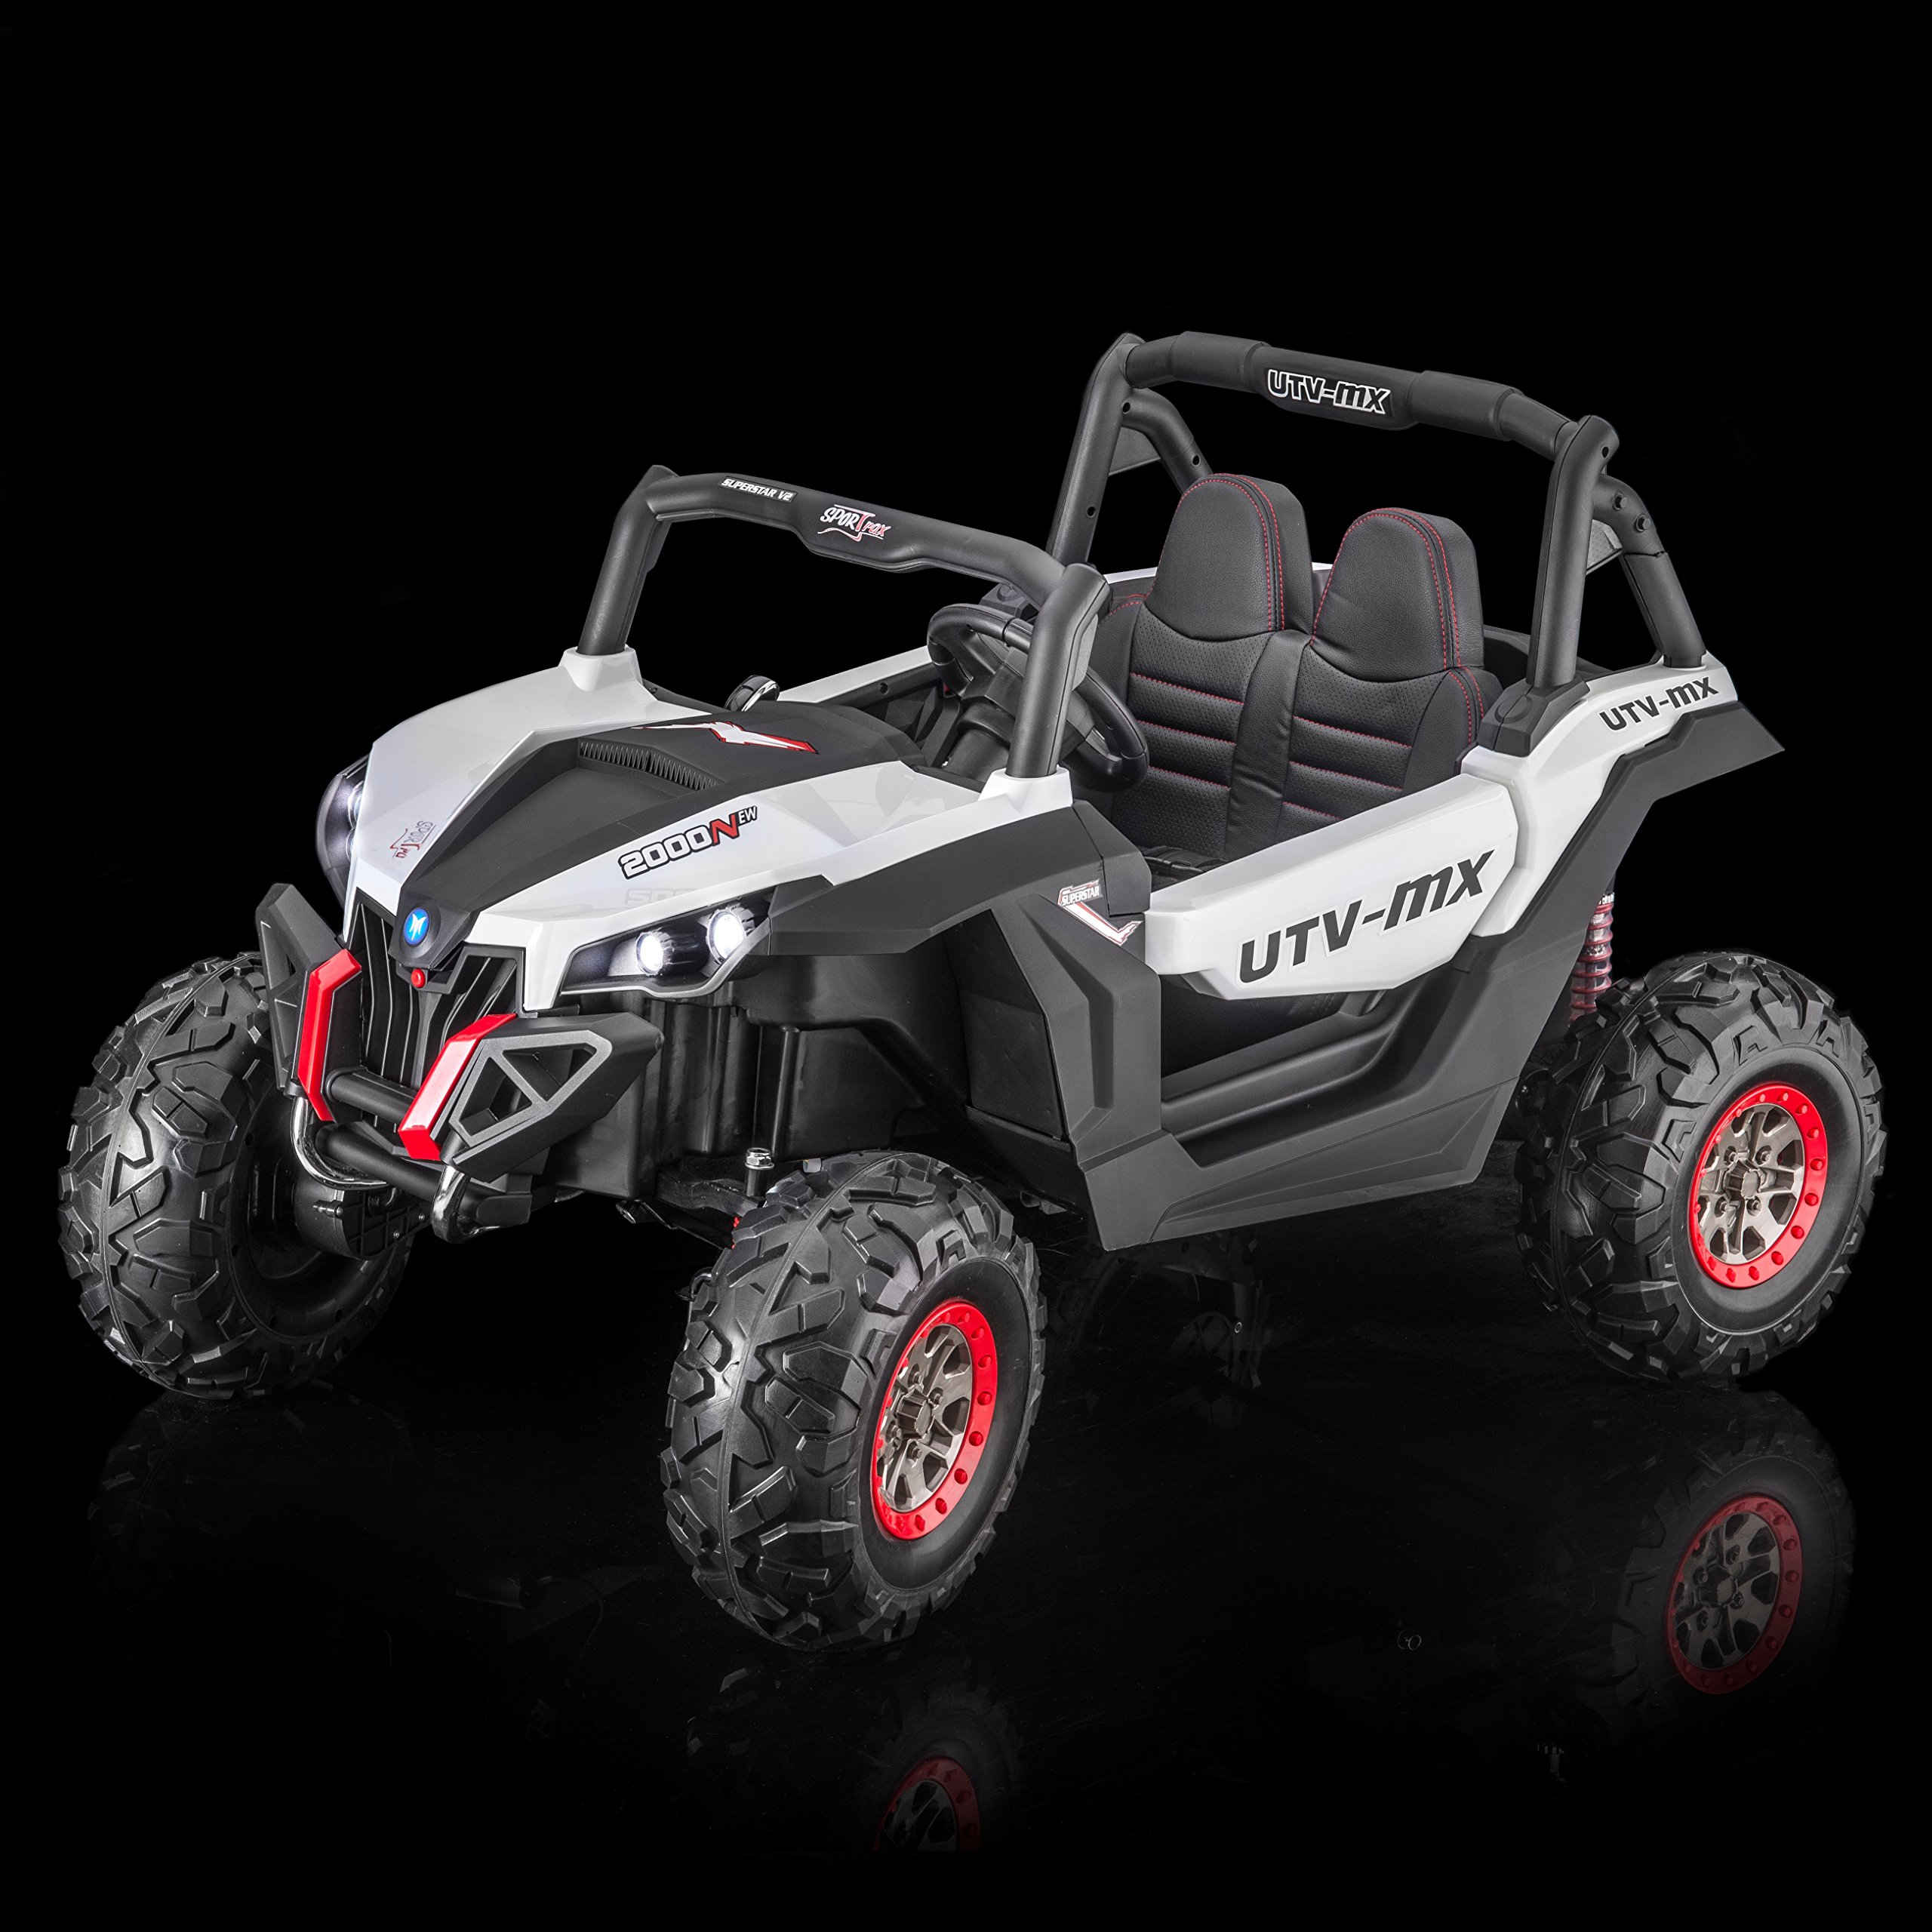 SPORTrax UTV Screemer, 2 SEATER, 4WD Kid's Ride On Vehicle, Battery Powered, Remote Control w/FREE MP3 Player - White